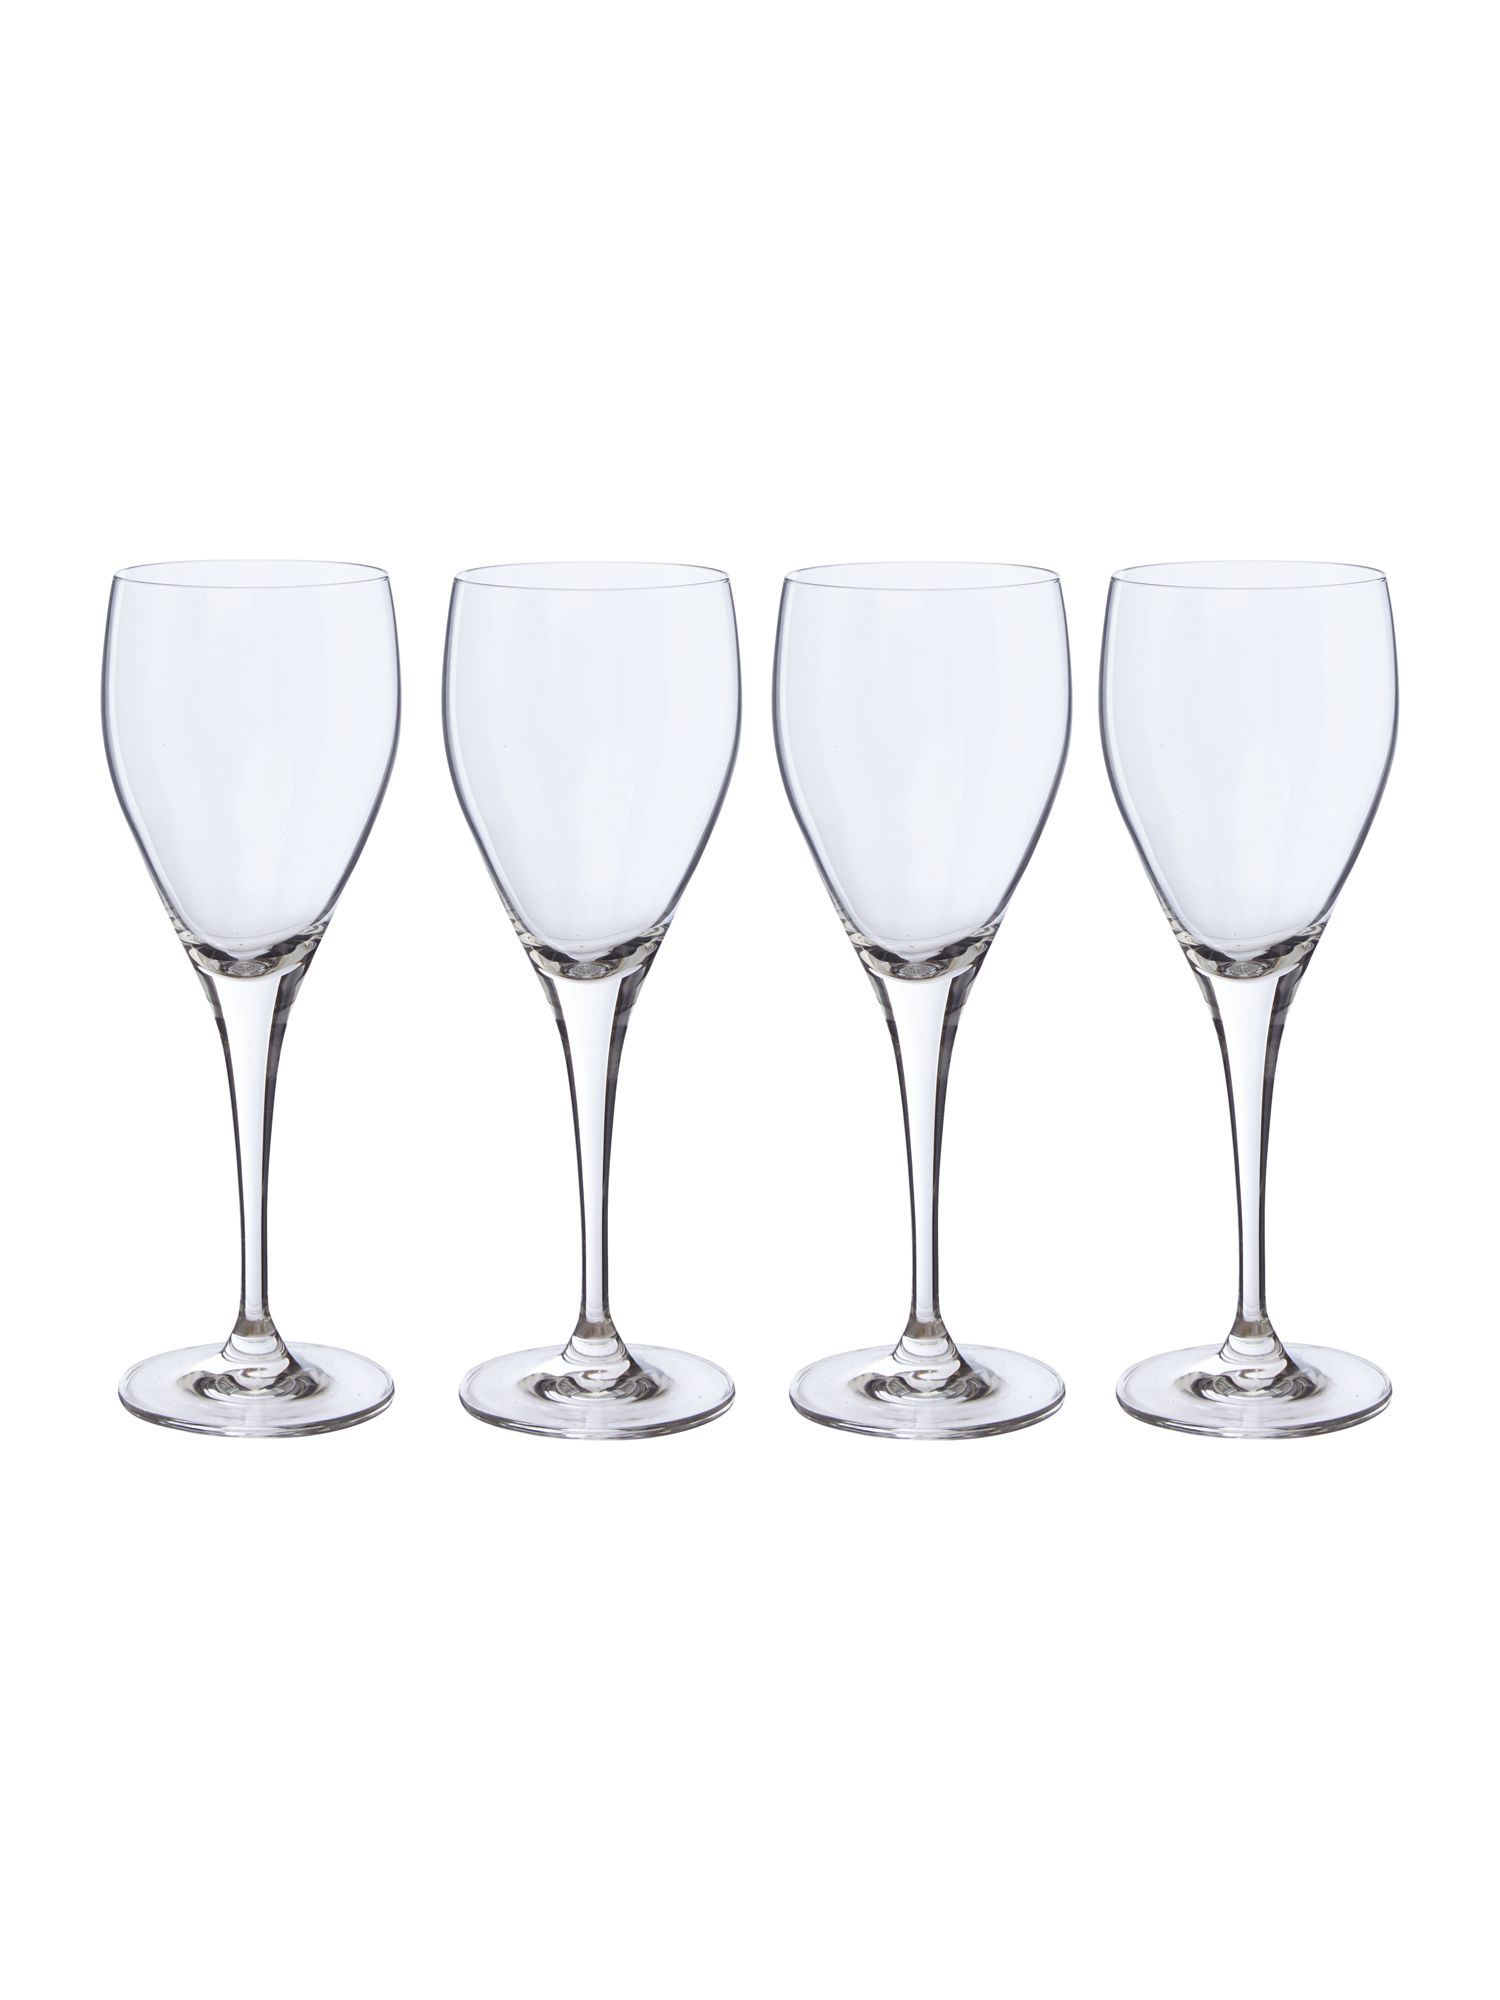 Nicole set of 4 white wine